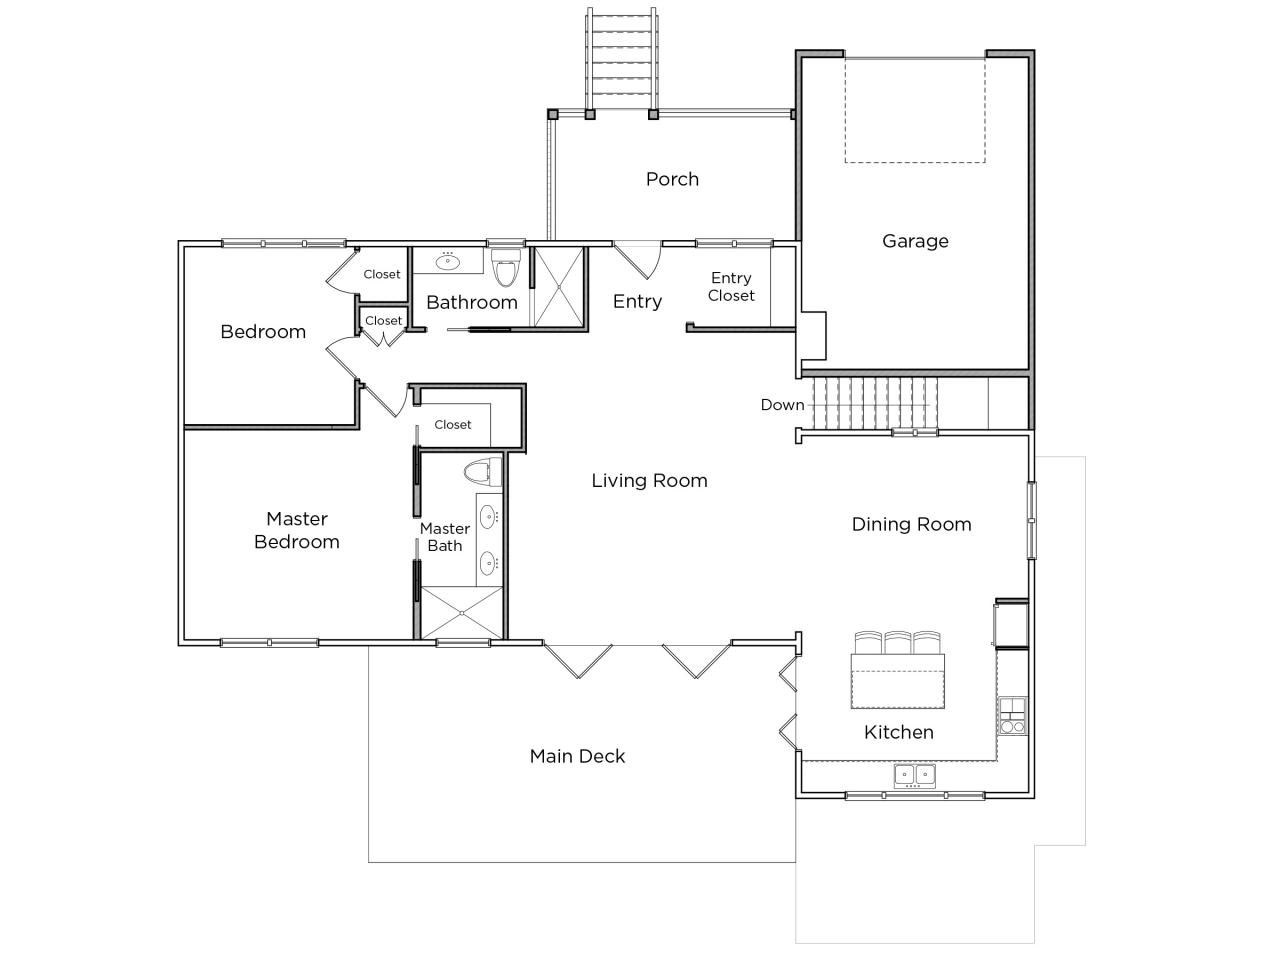 Home Improvement Tv Show Floor Plan